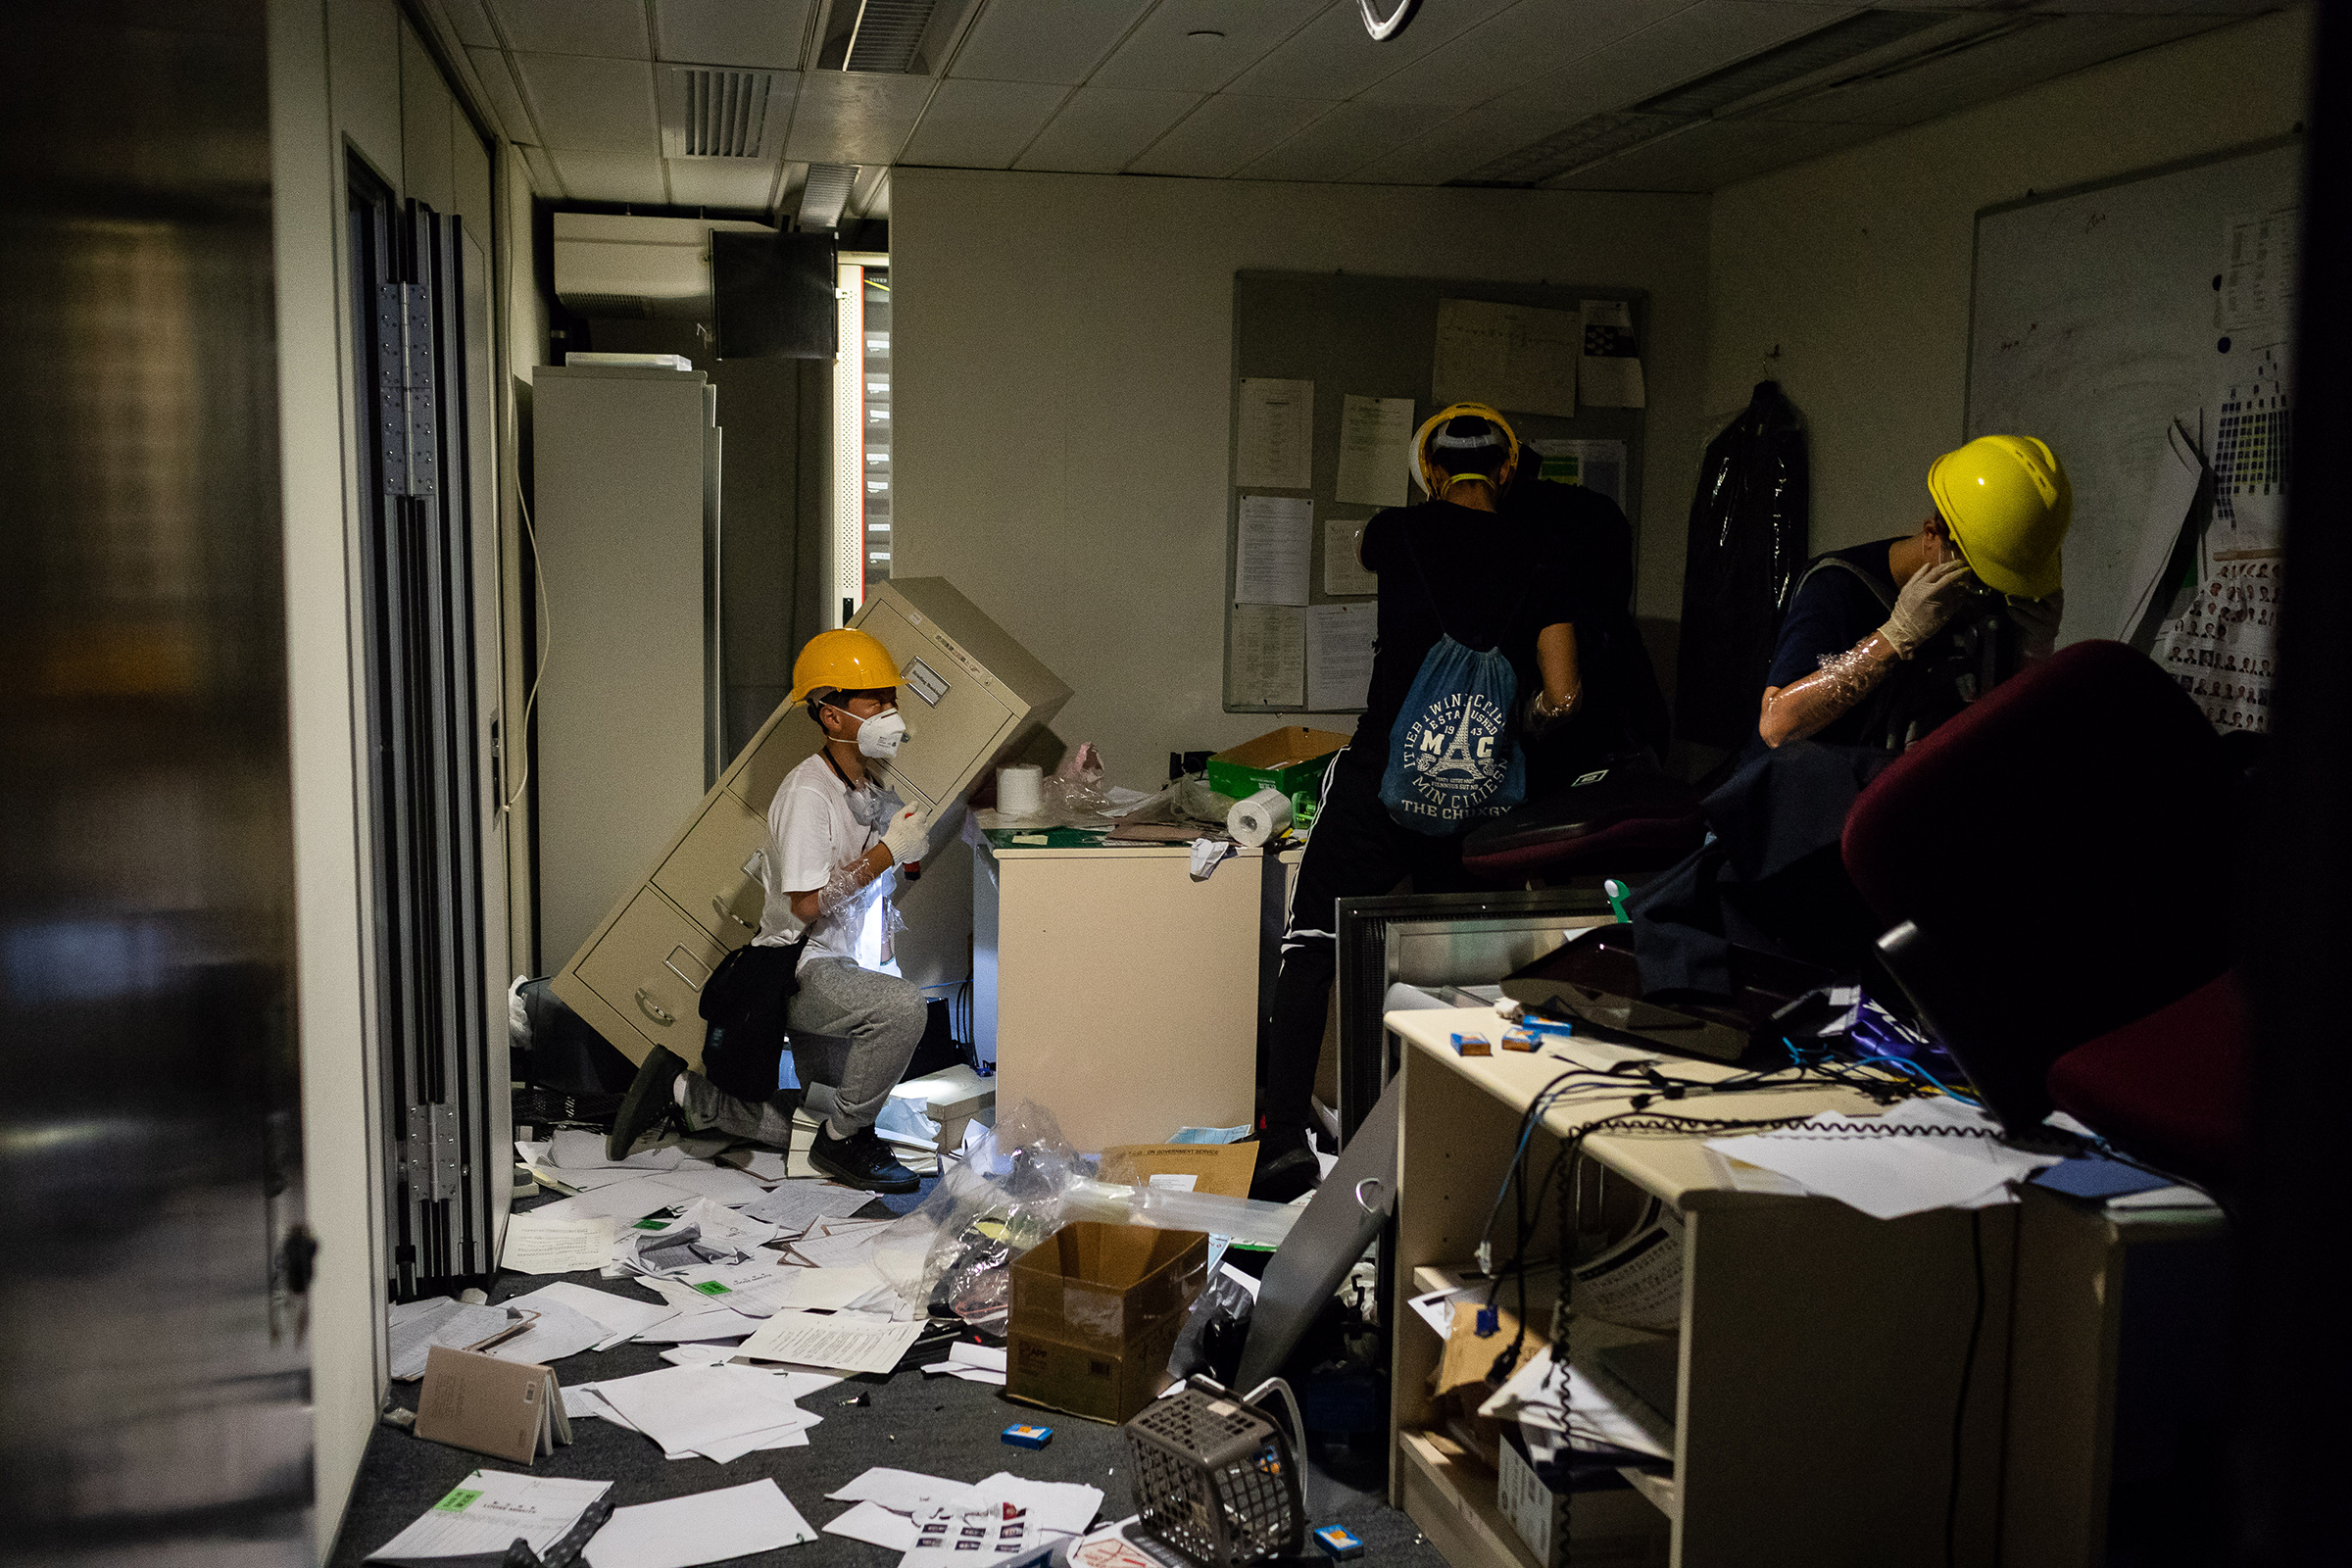 Demonstrators look through items in an office after breaking into the Legislative Council building during a protest in Hong Kong on July 1, 2019.